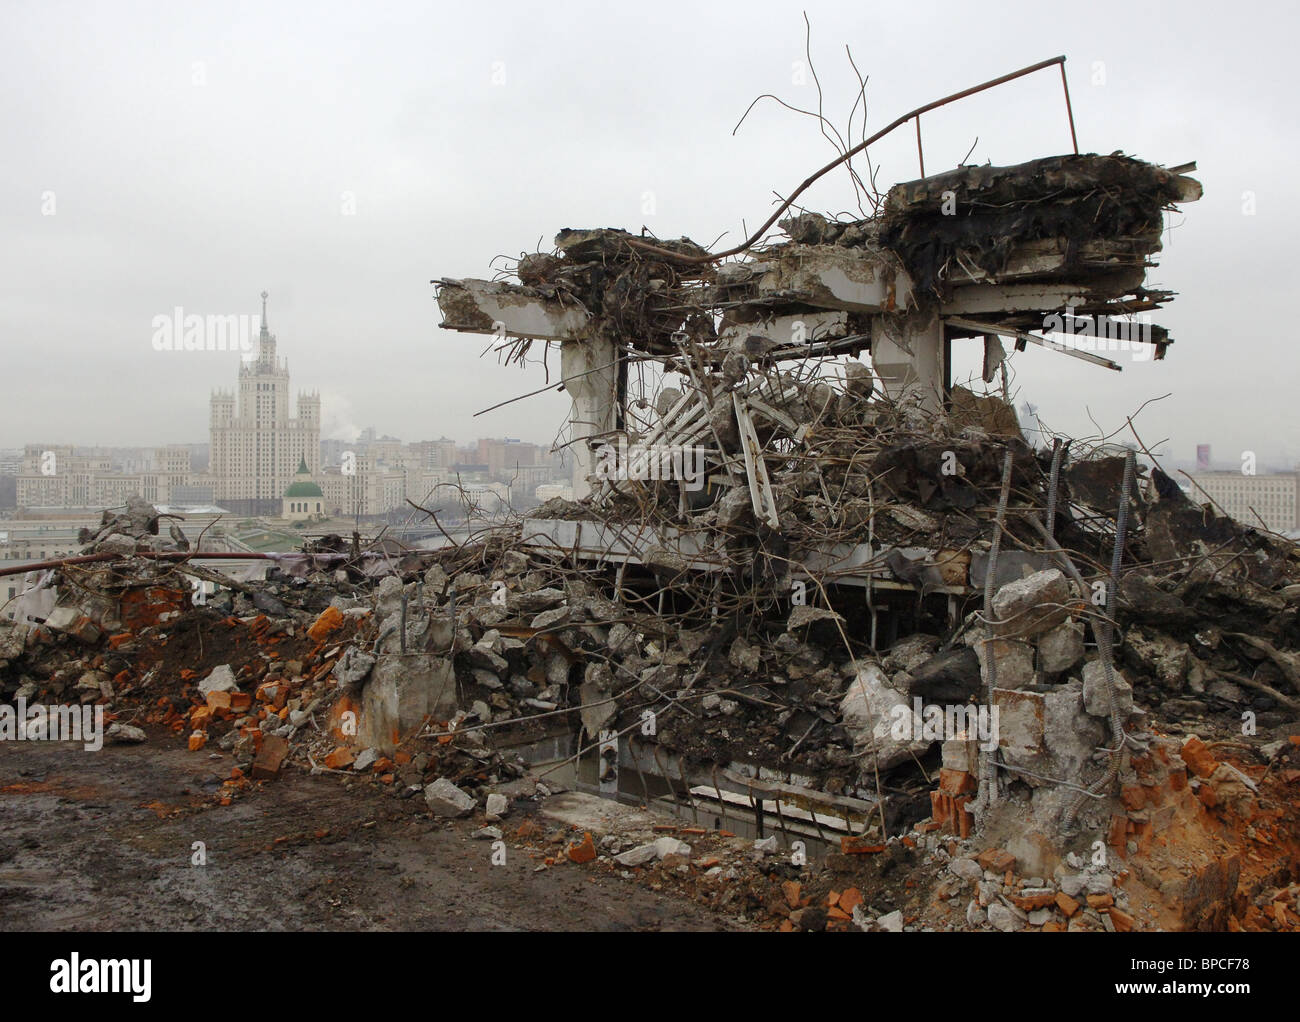 Rossiya hotel being demolished in Moscow to make way for new hotels - Stock Image